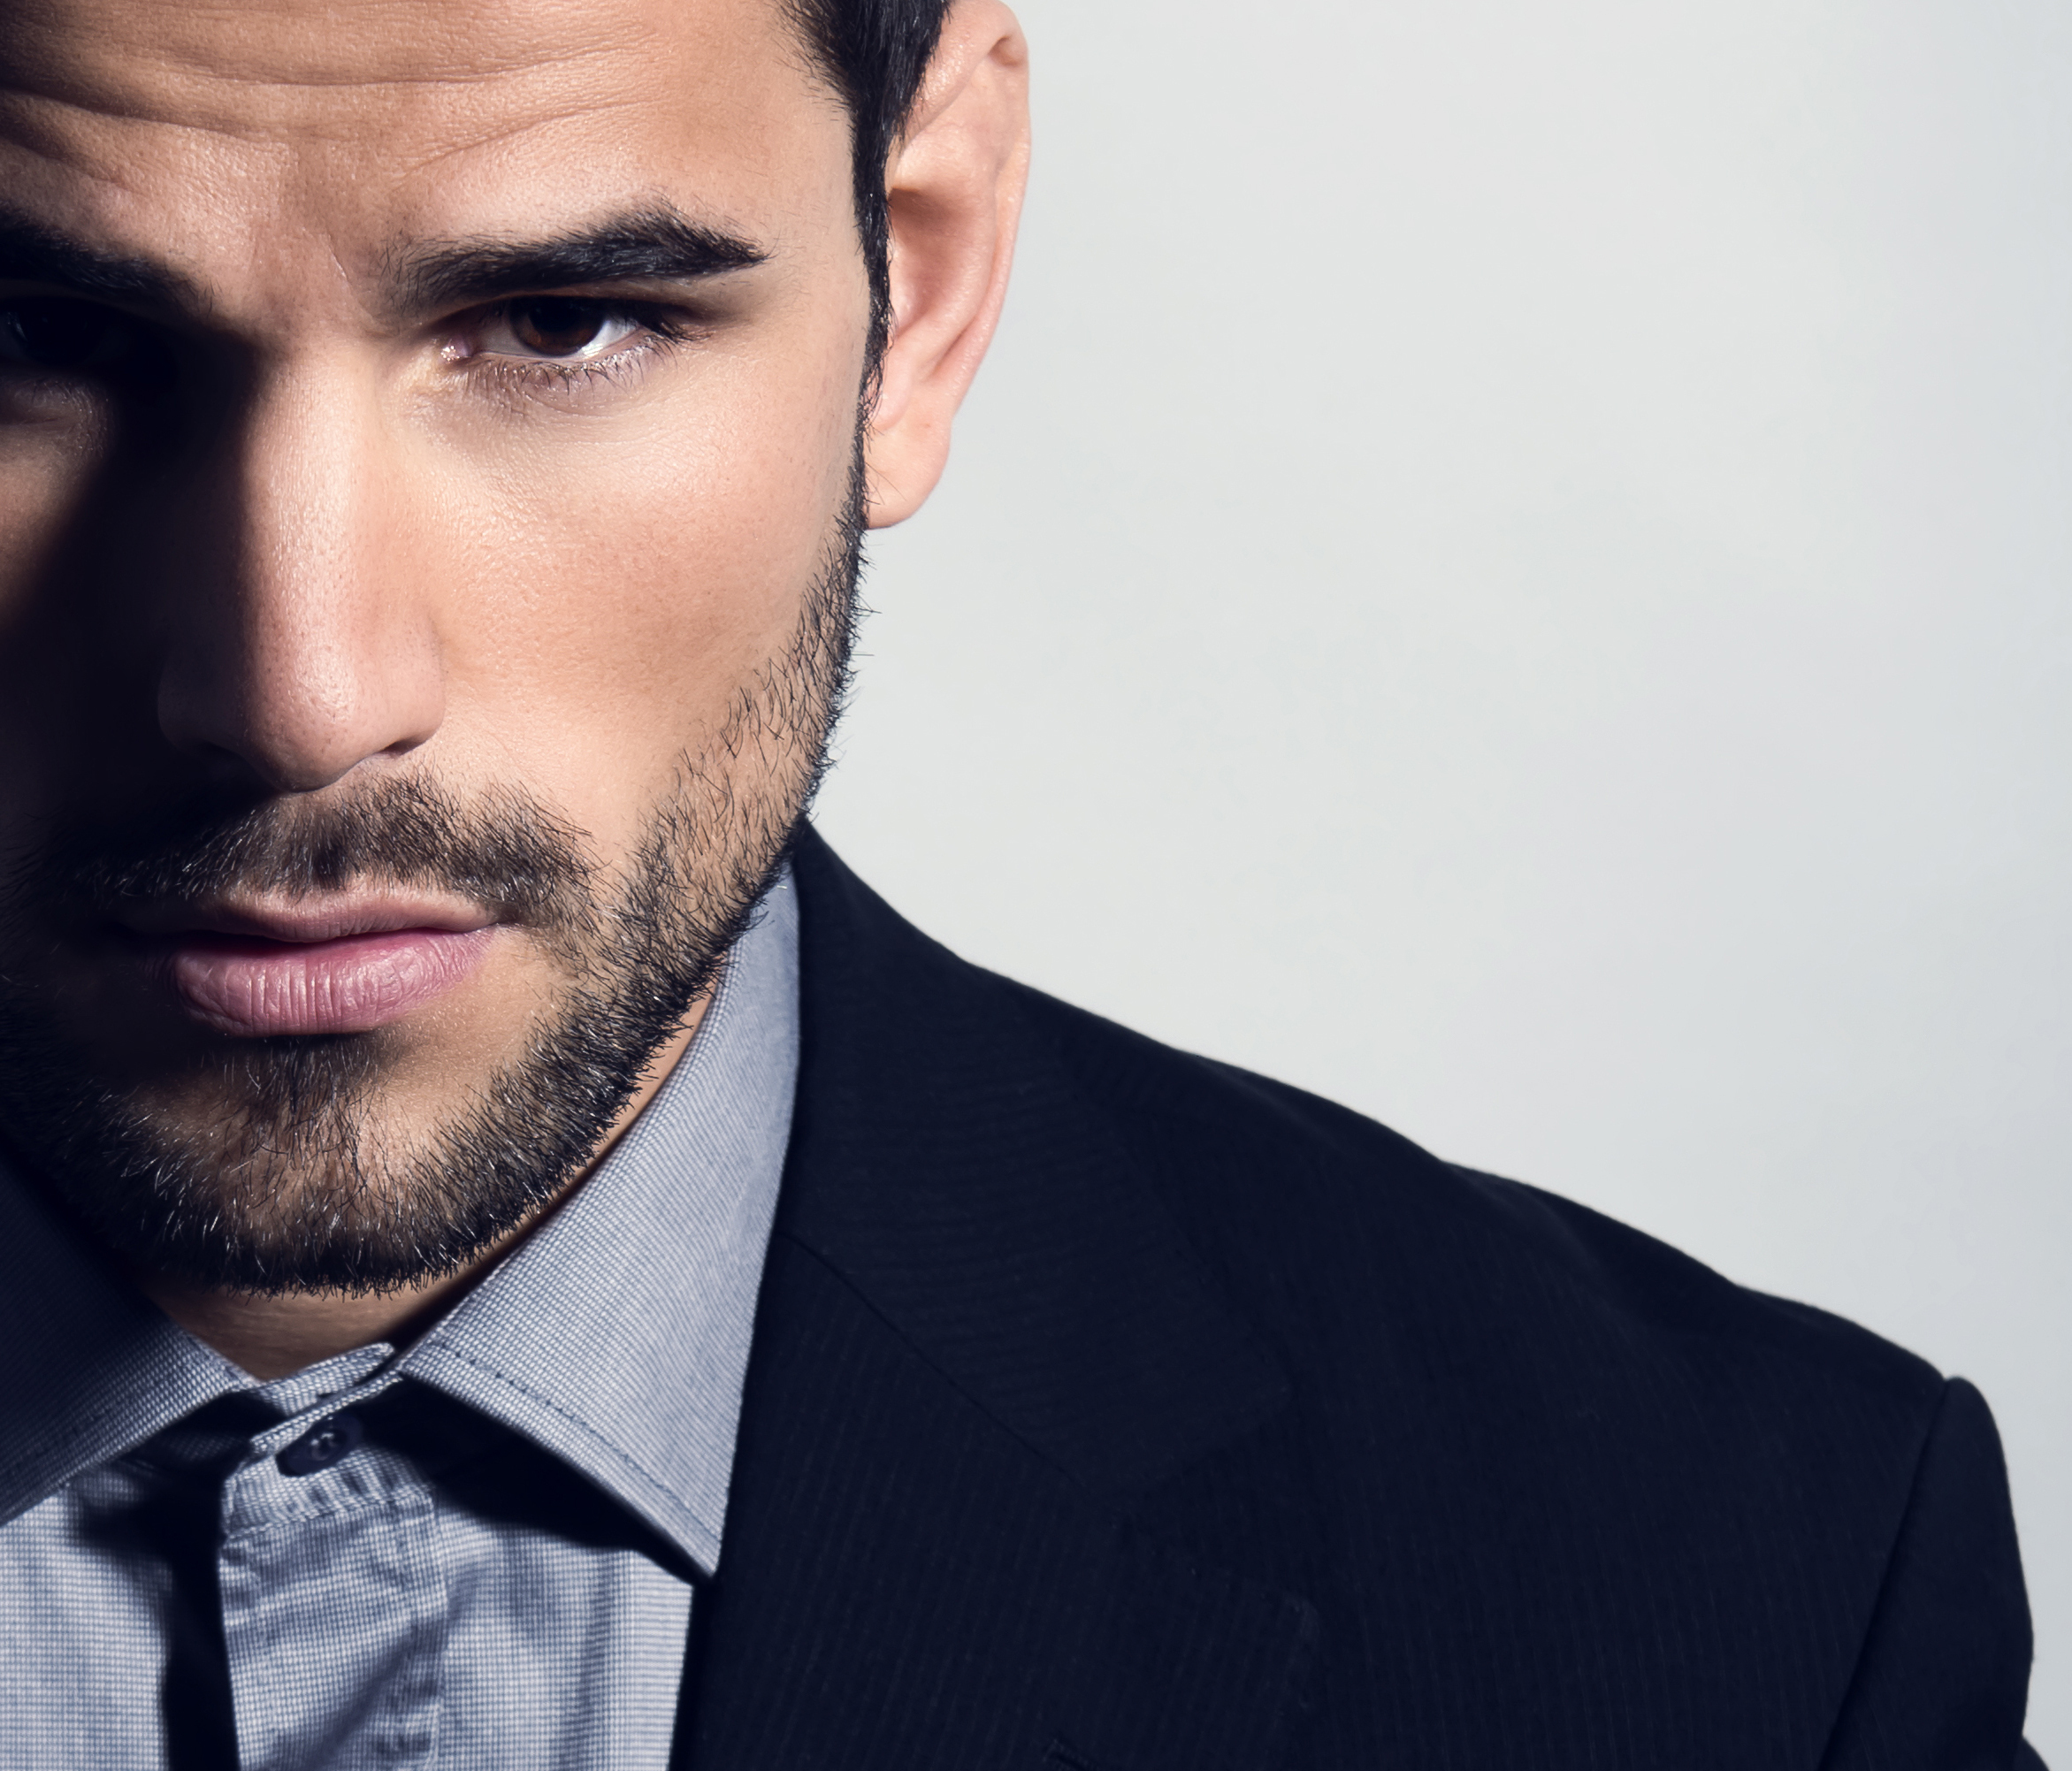 The 9 Things Every Girl Actually Wants A Guy According To Science